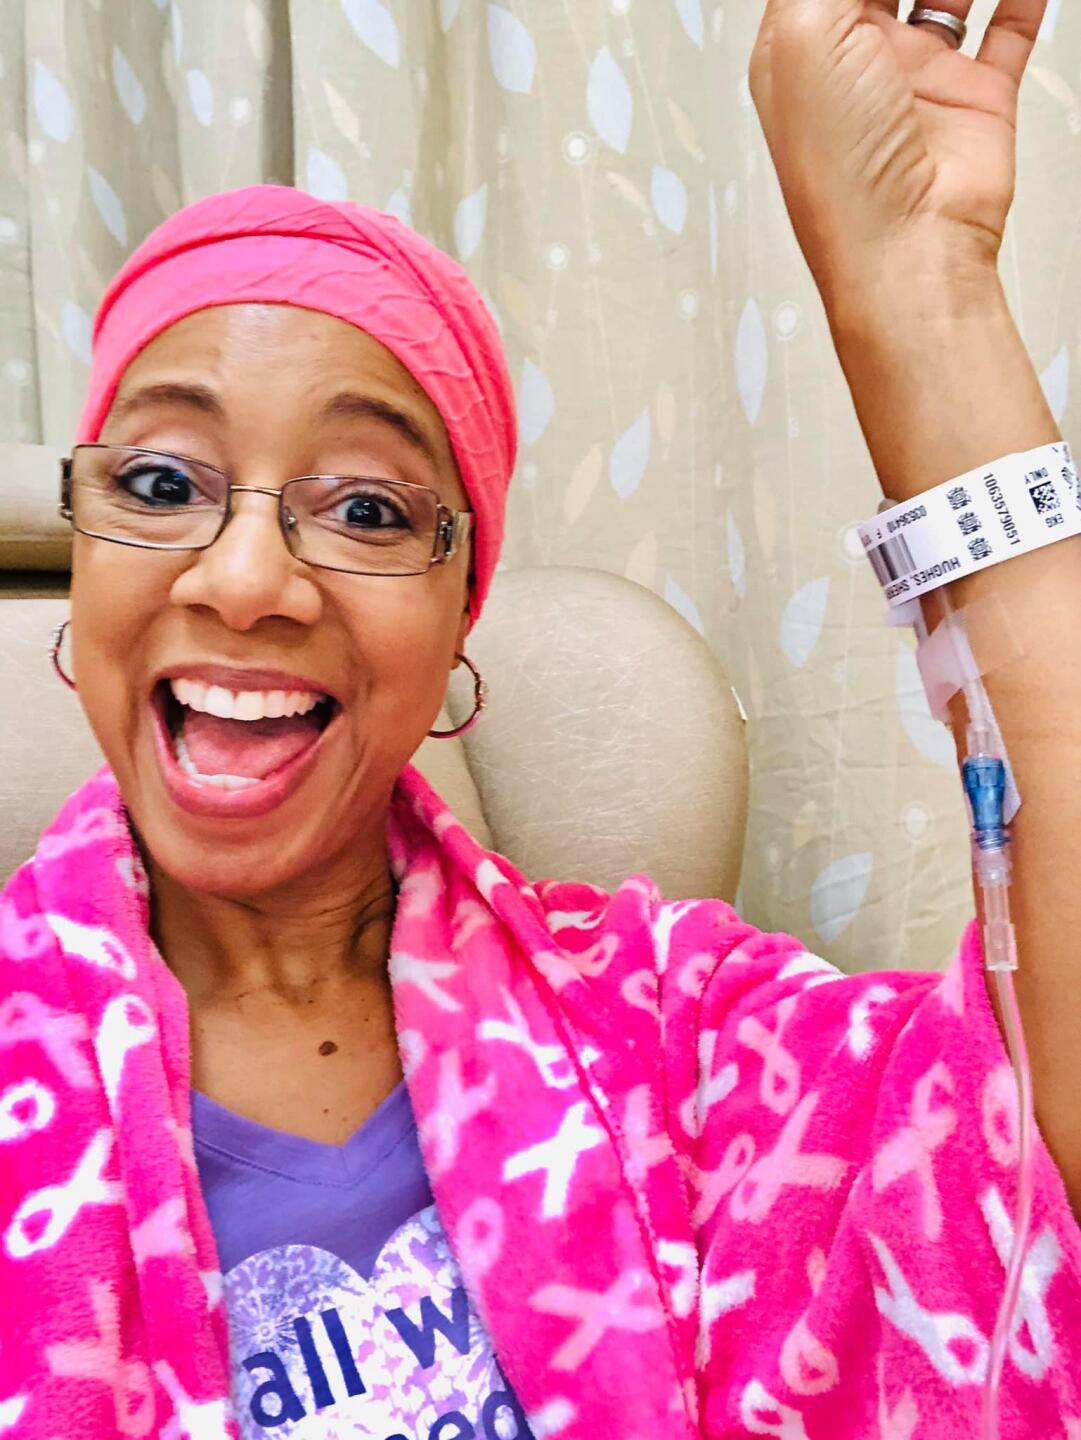 Sherry Hughes posted this photo of herself on Facebook on Nov. 8, 2019. It shows her getting chemotherapy.